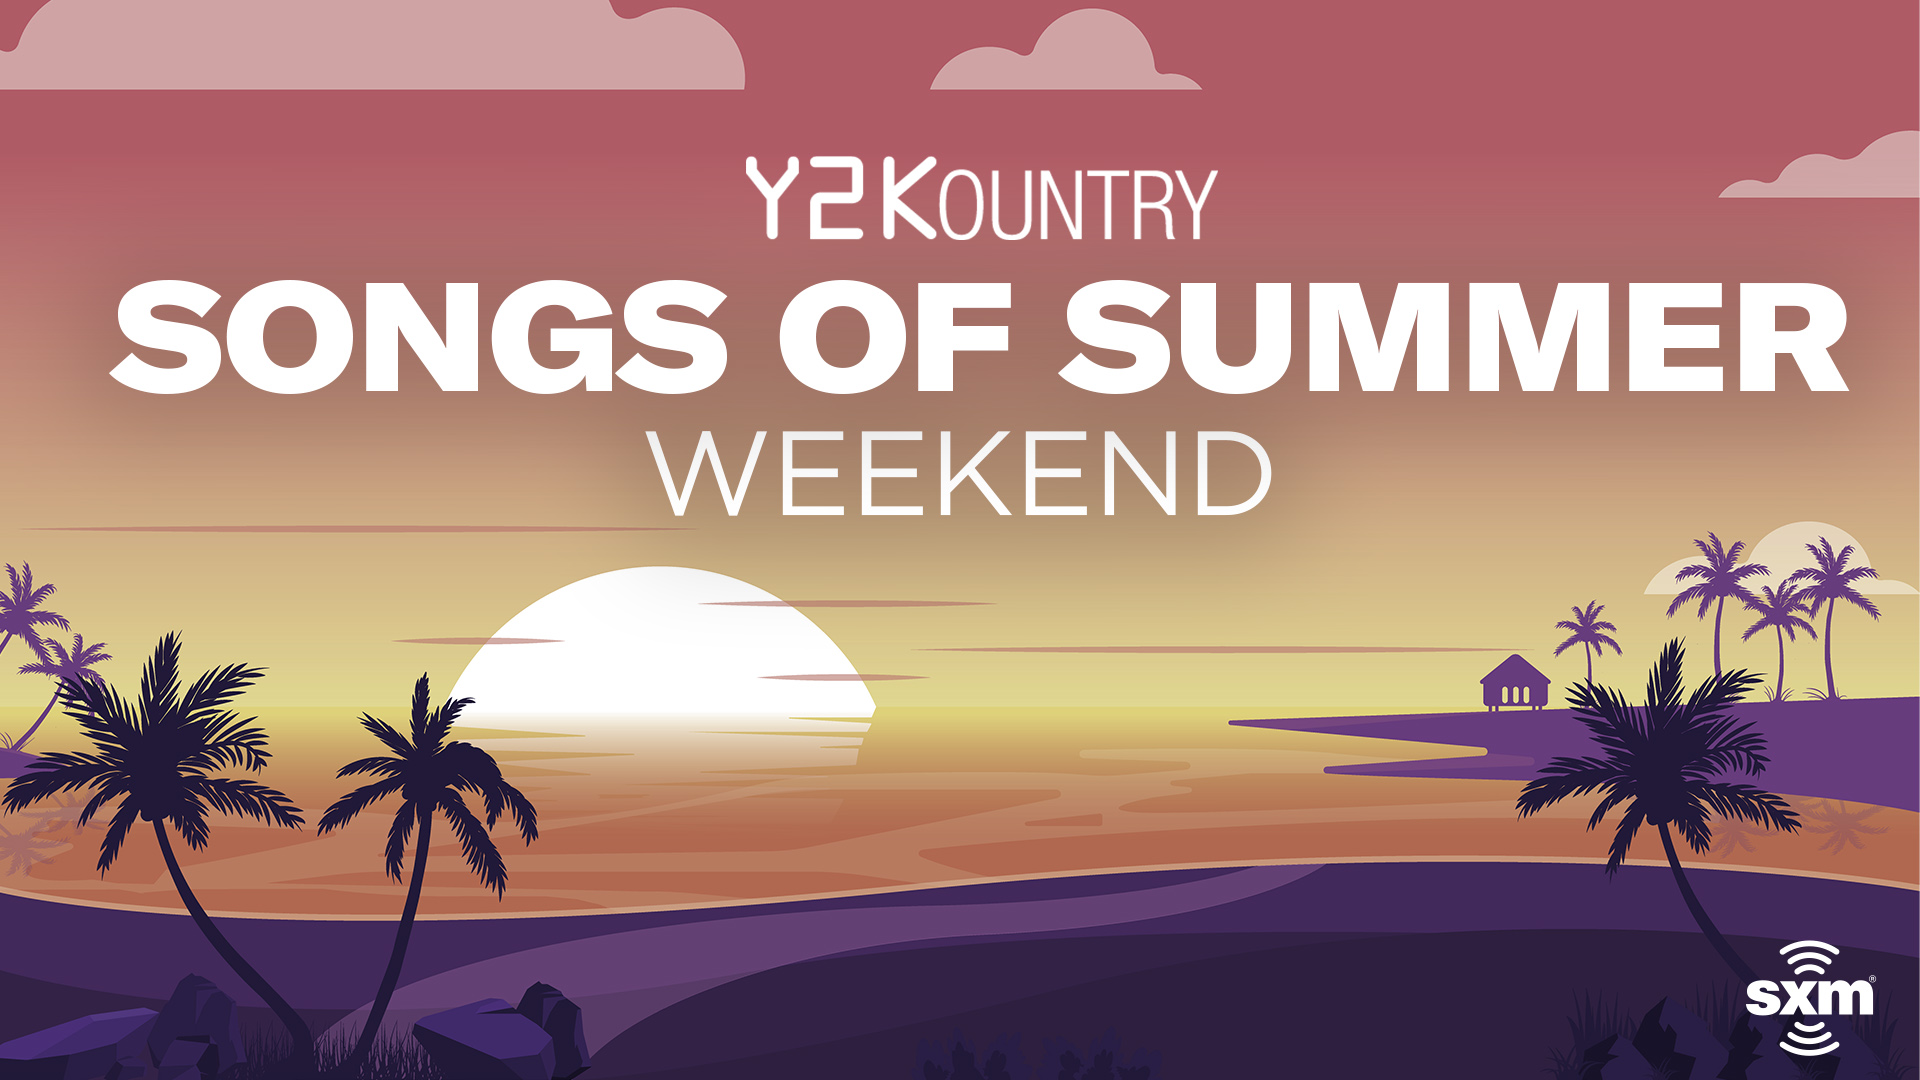 Vote to hear this millennium's top country songs of summer all Fourth of July weekend